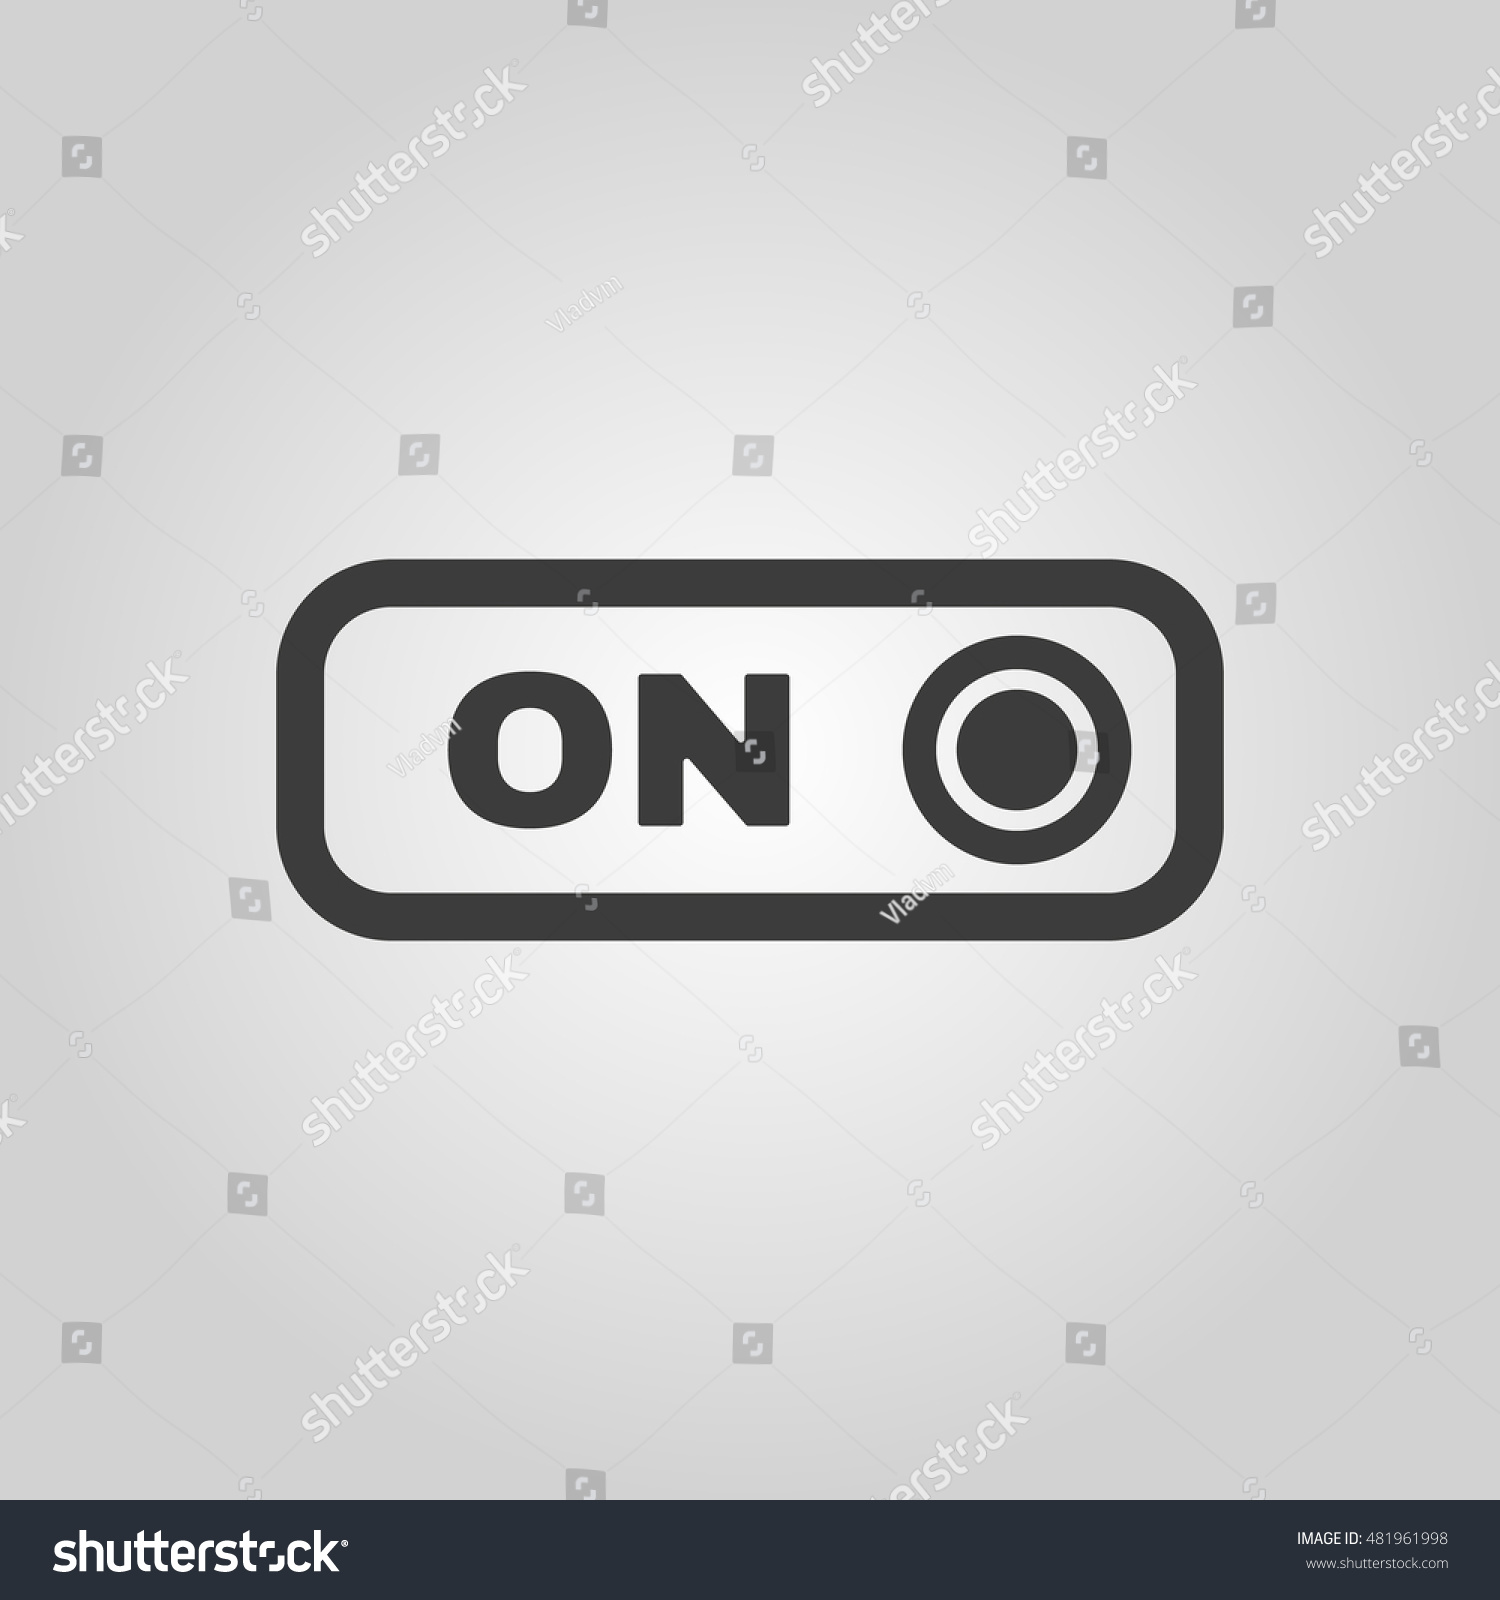 Push switch symbol images symbol and sign ideas unusual maintained push button symbol gallery electrical circuit excellent maintained push button symbol images everything you buycottarizona